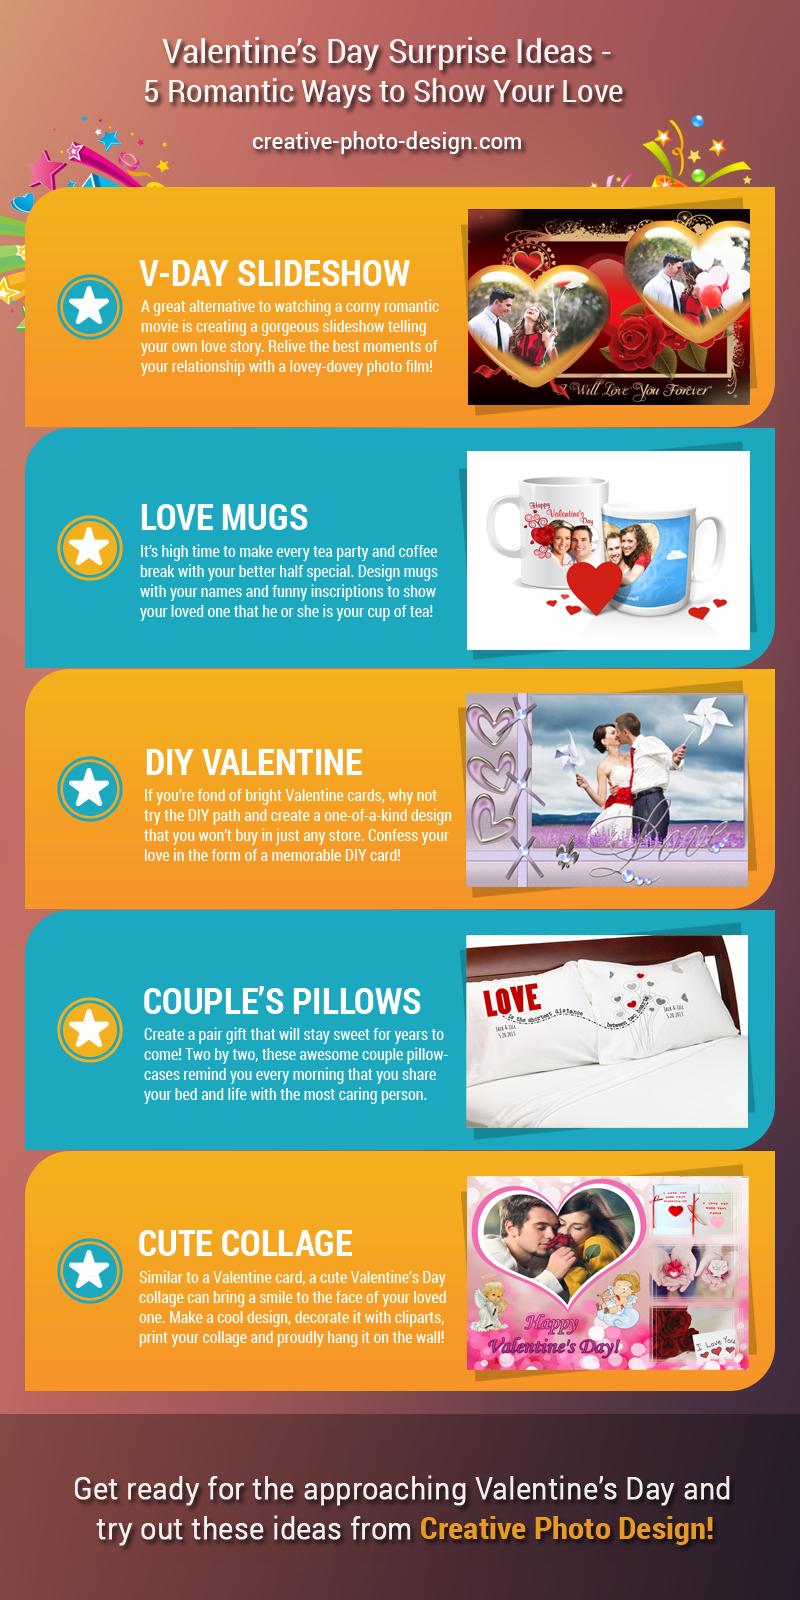 Valentine's Day Surprise Ideas Creative Photo Design Blog